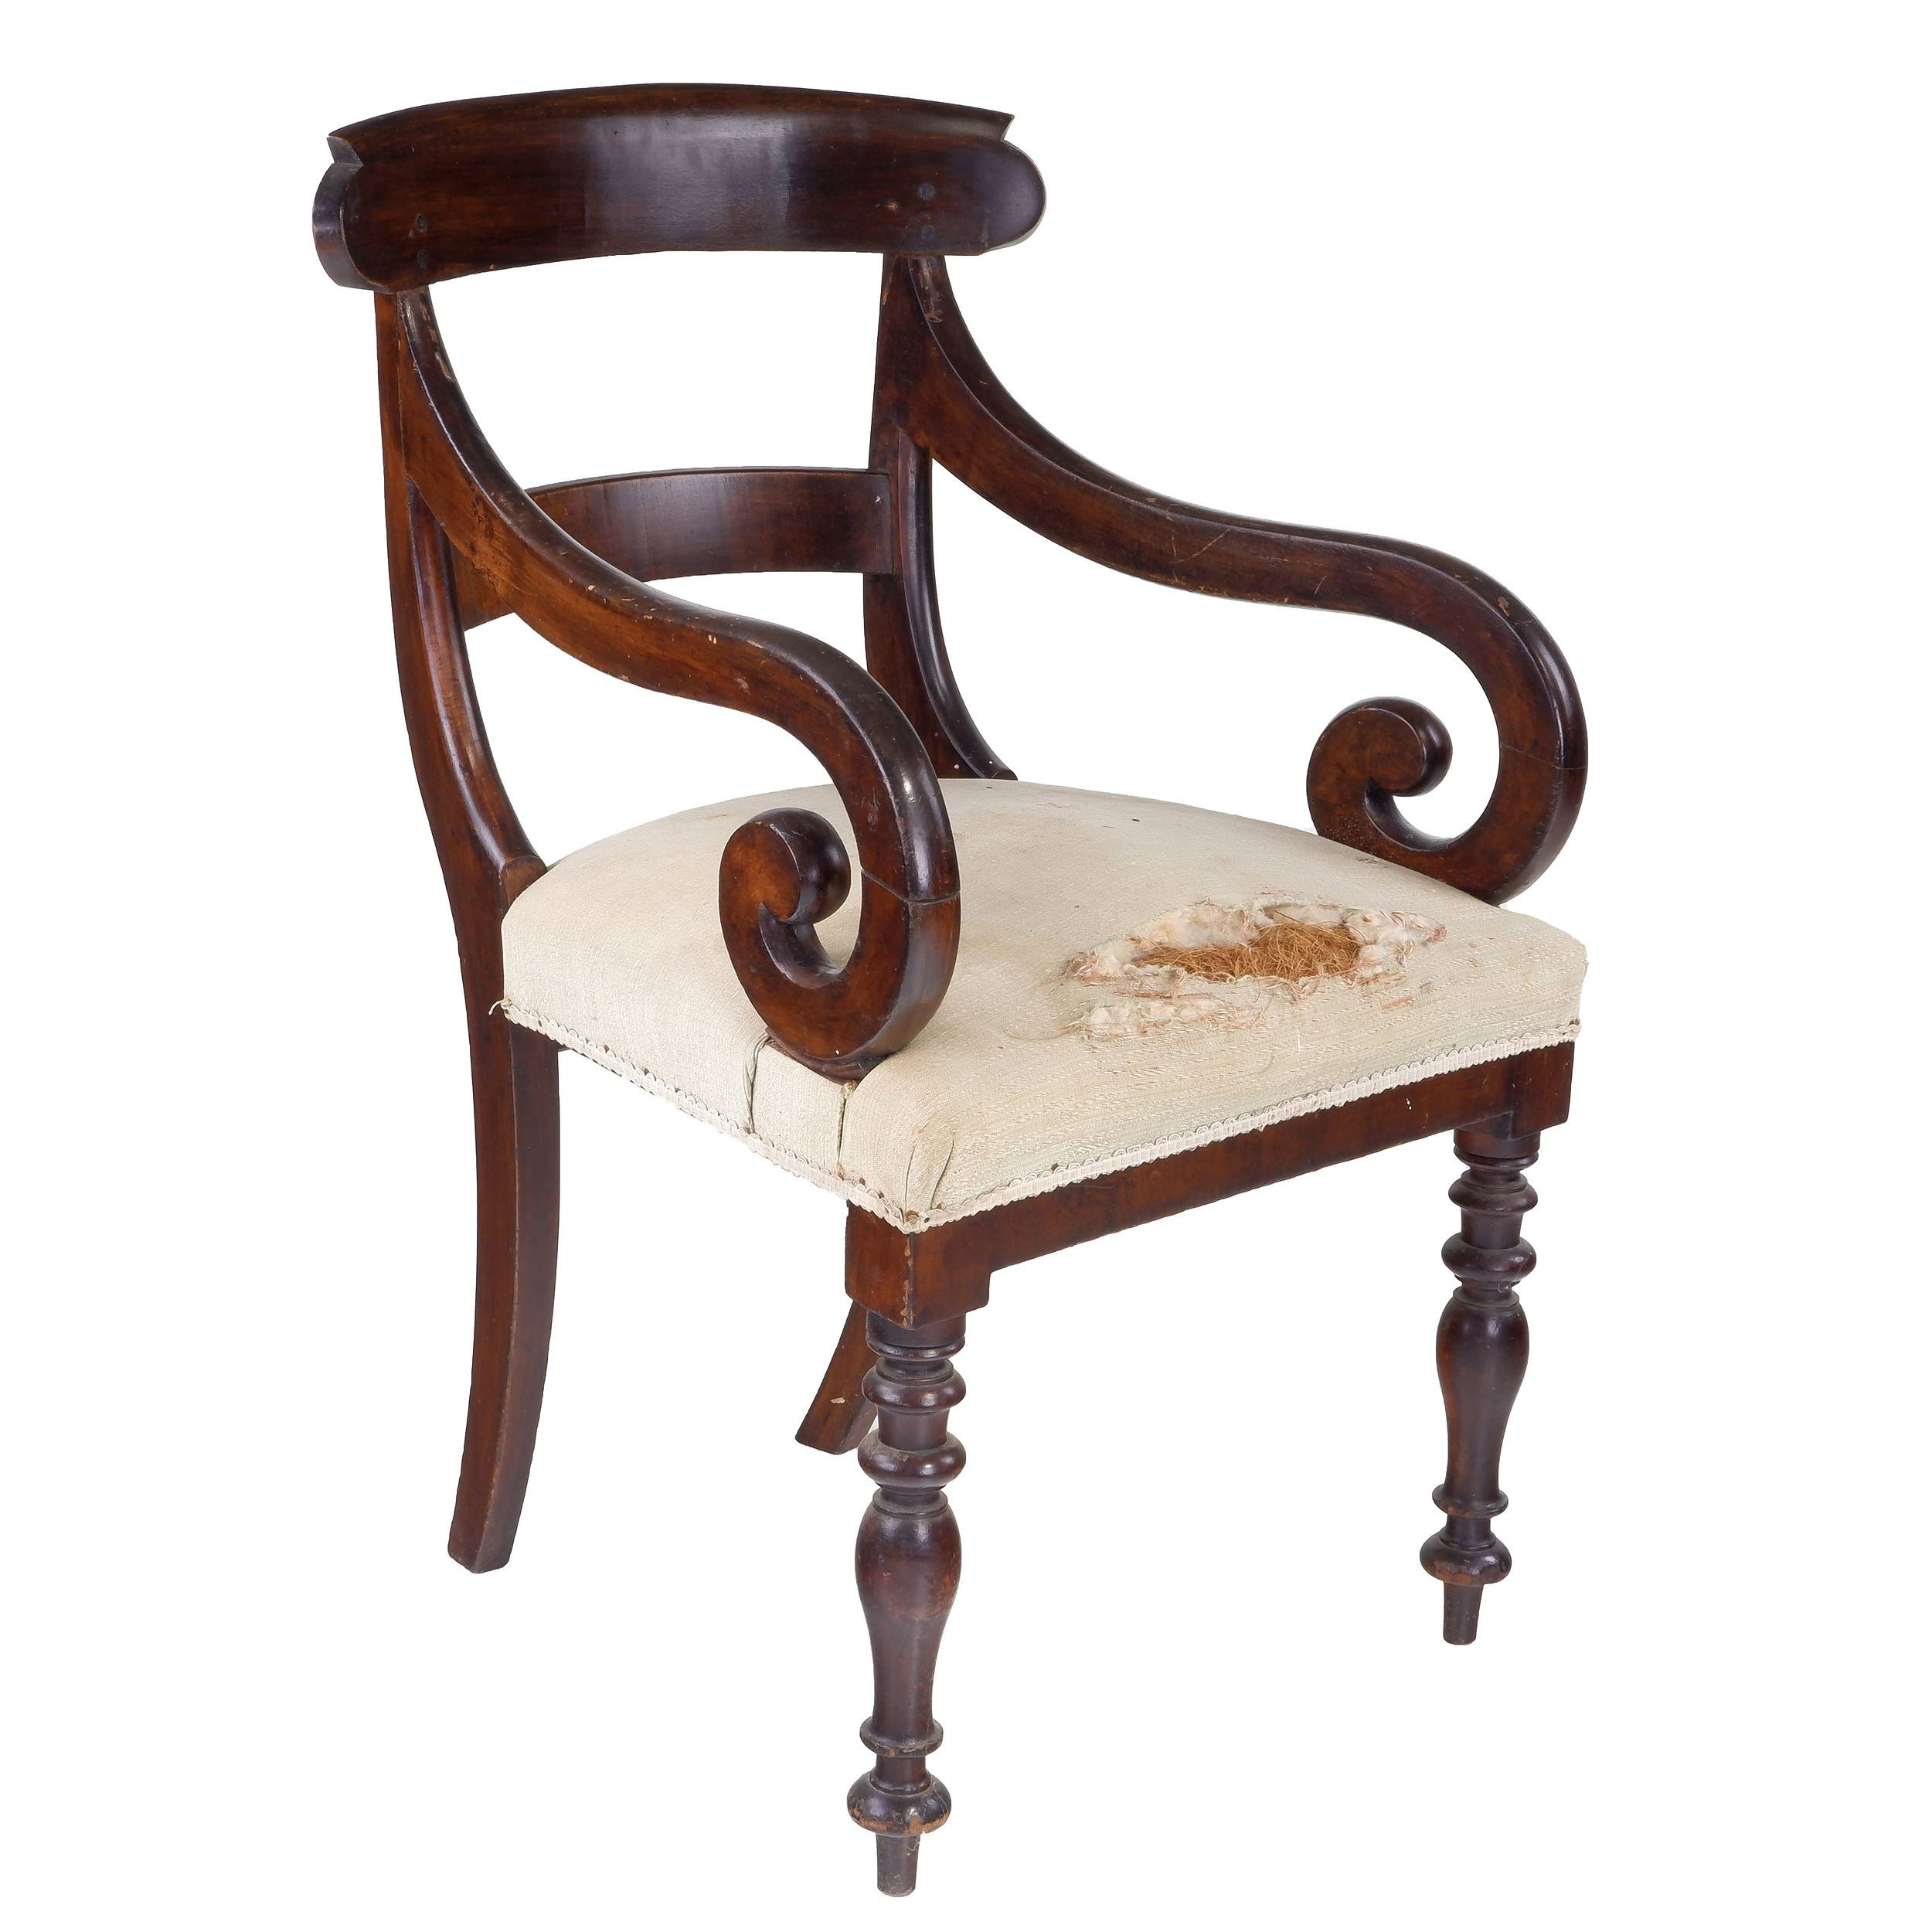 'Australian Cedar Scrolled Arm Barback Carver Chair ex Gidleigh via Bungendore NSW'